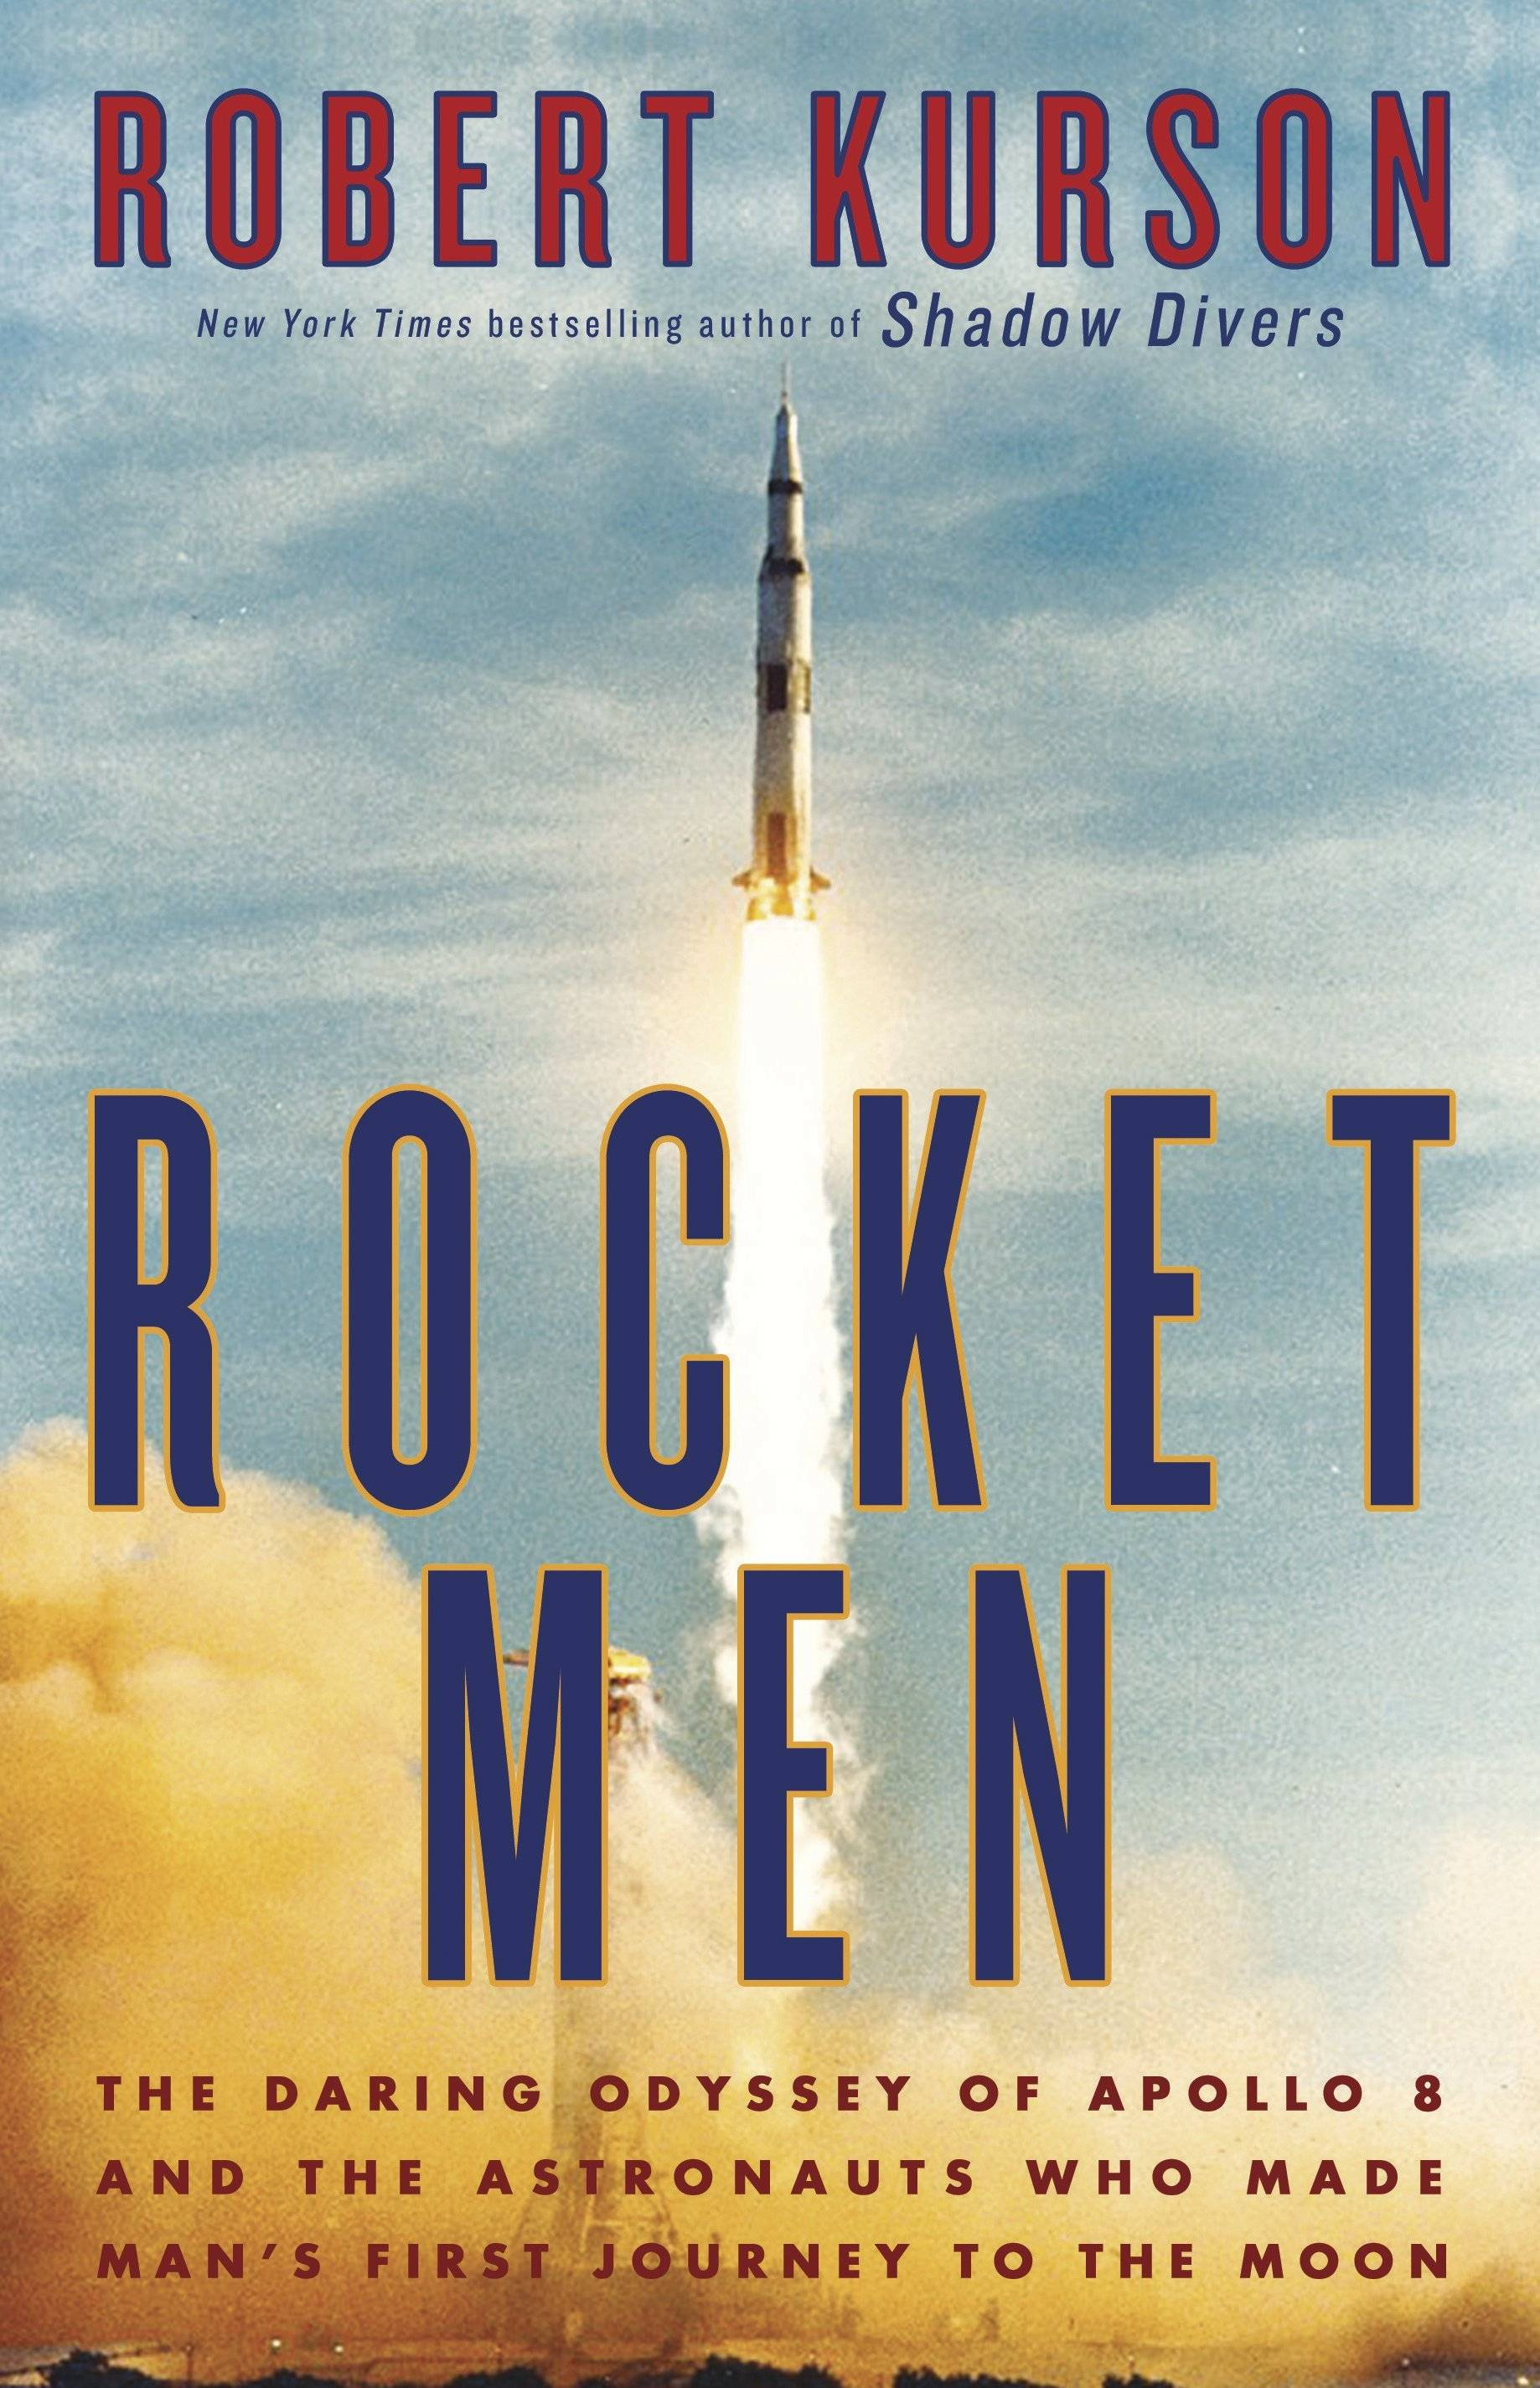 """Rocket Men: The Daring Odyssey of Apollo 8 and the Astronauts Who Made Man's First Journey to the Moon"" by Robert Kurson"